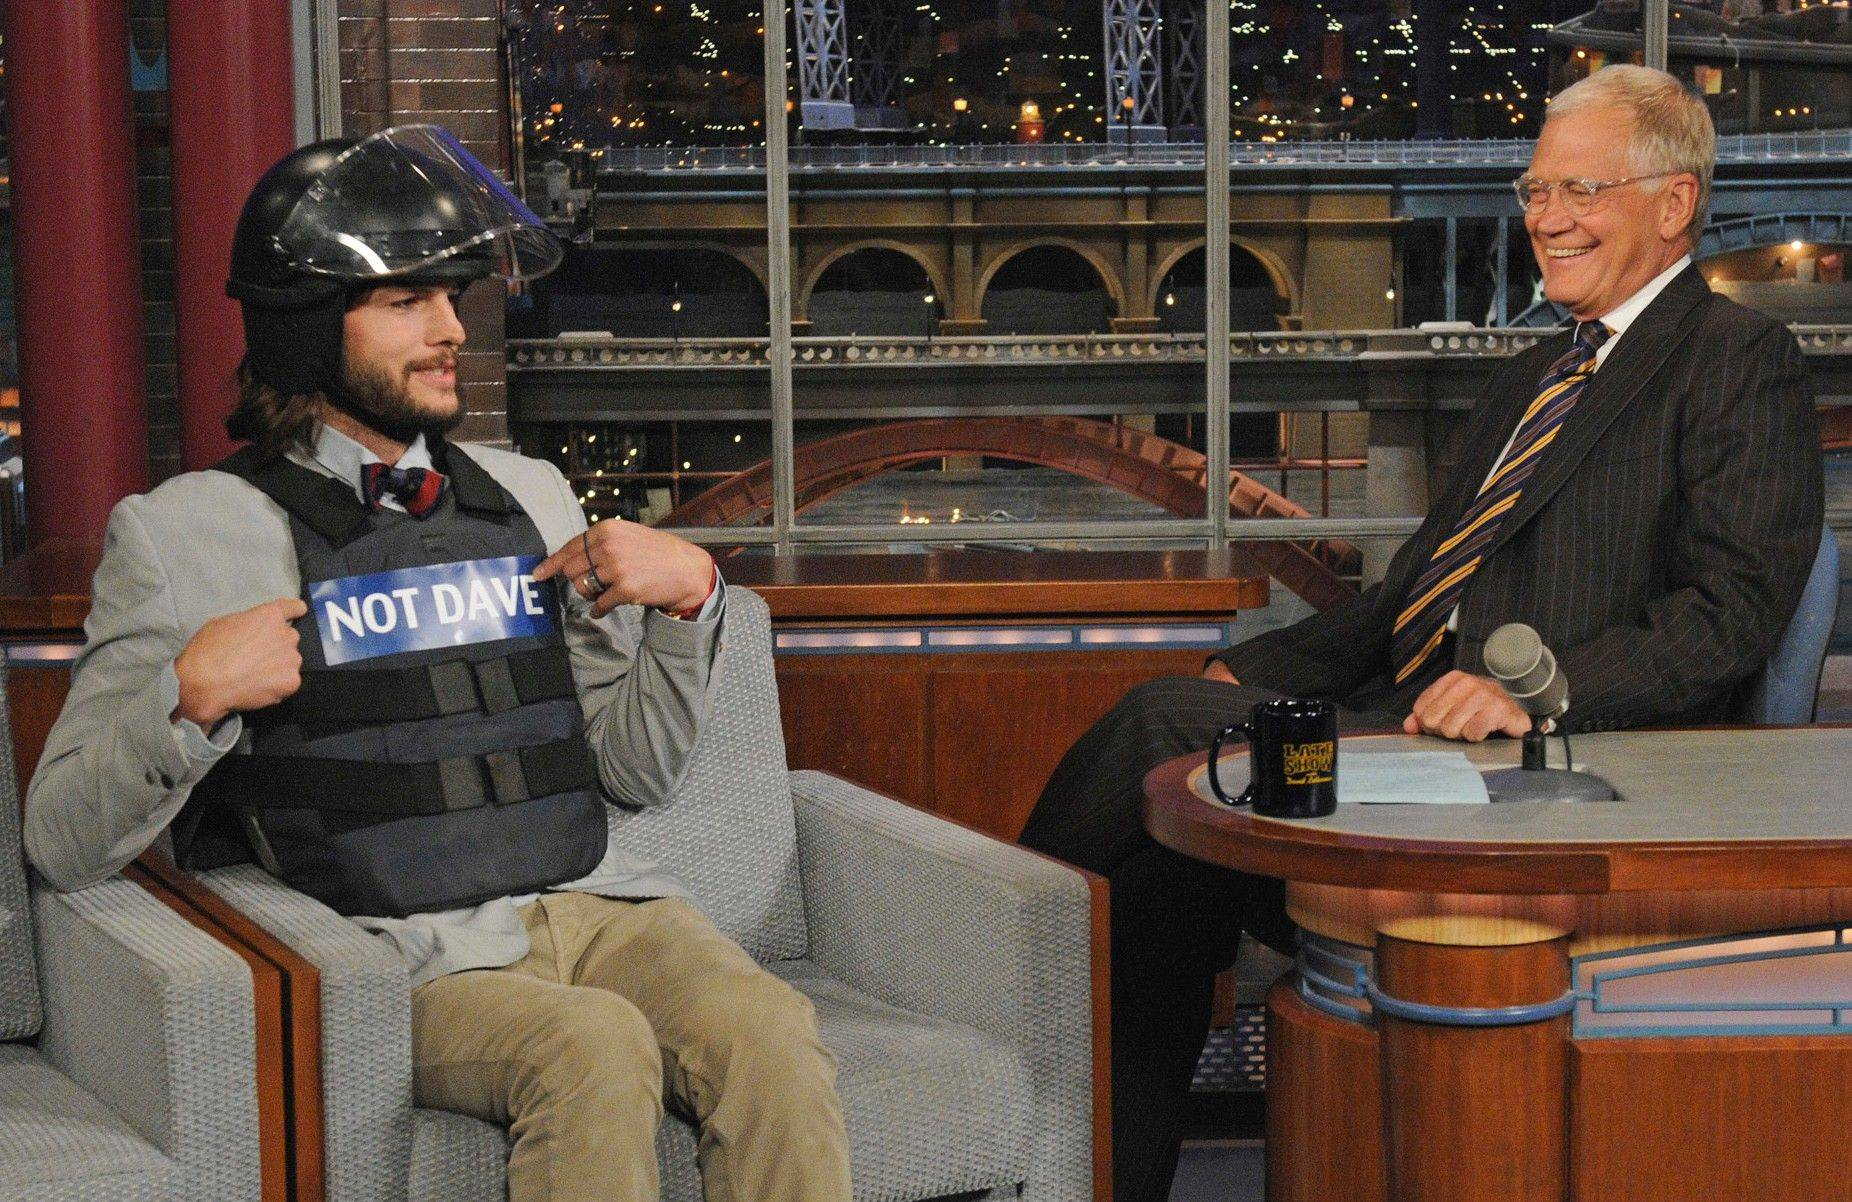 """Two and a Half Men"" star Ashton Kutcher, left, pokes fun at host David Letterman by wearing a helmet and bullet proof vest labeled ""Not Dave,"" on the set of the ""Late Show with David Letterman"" Wednesday."